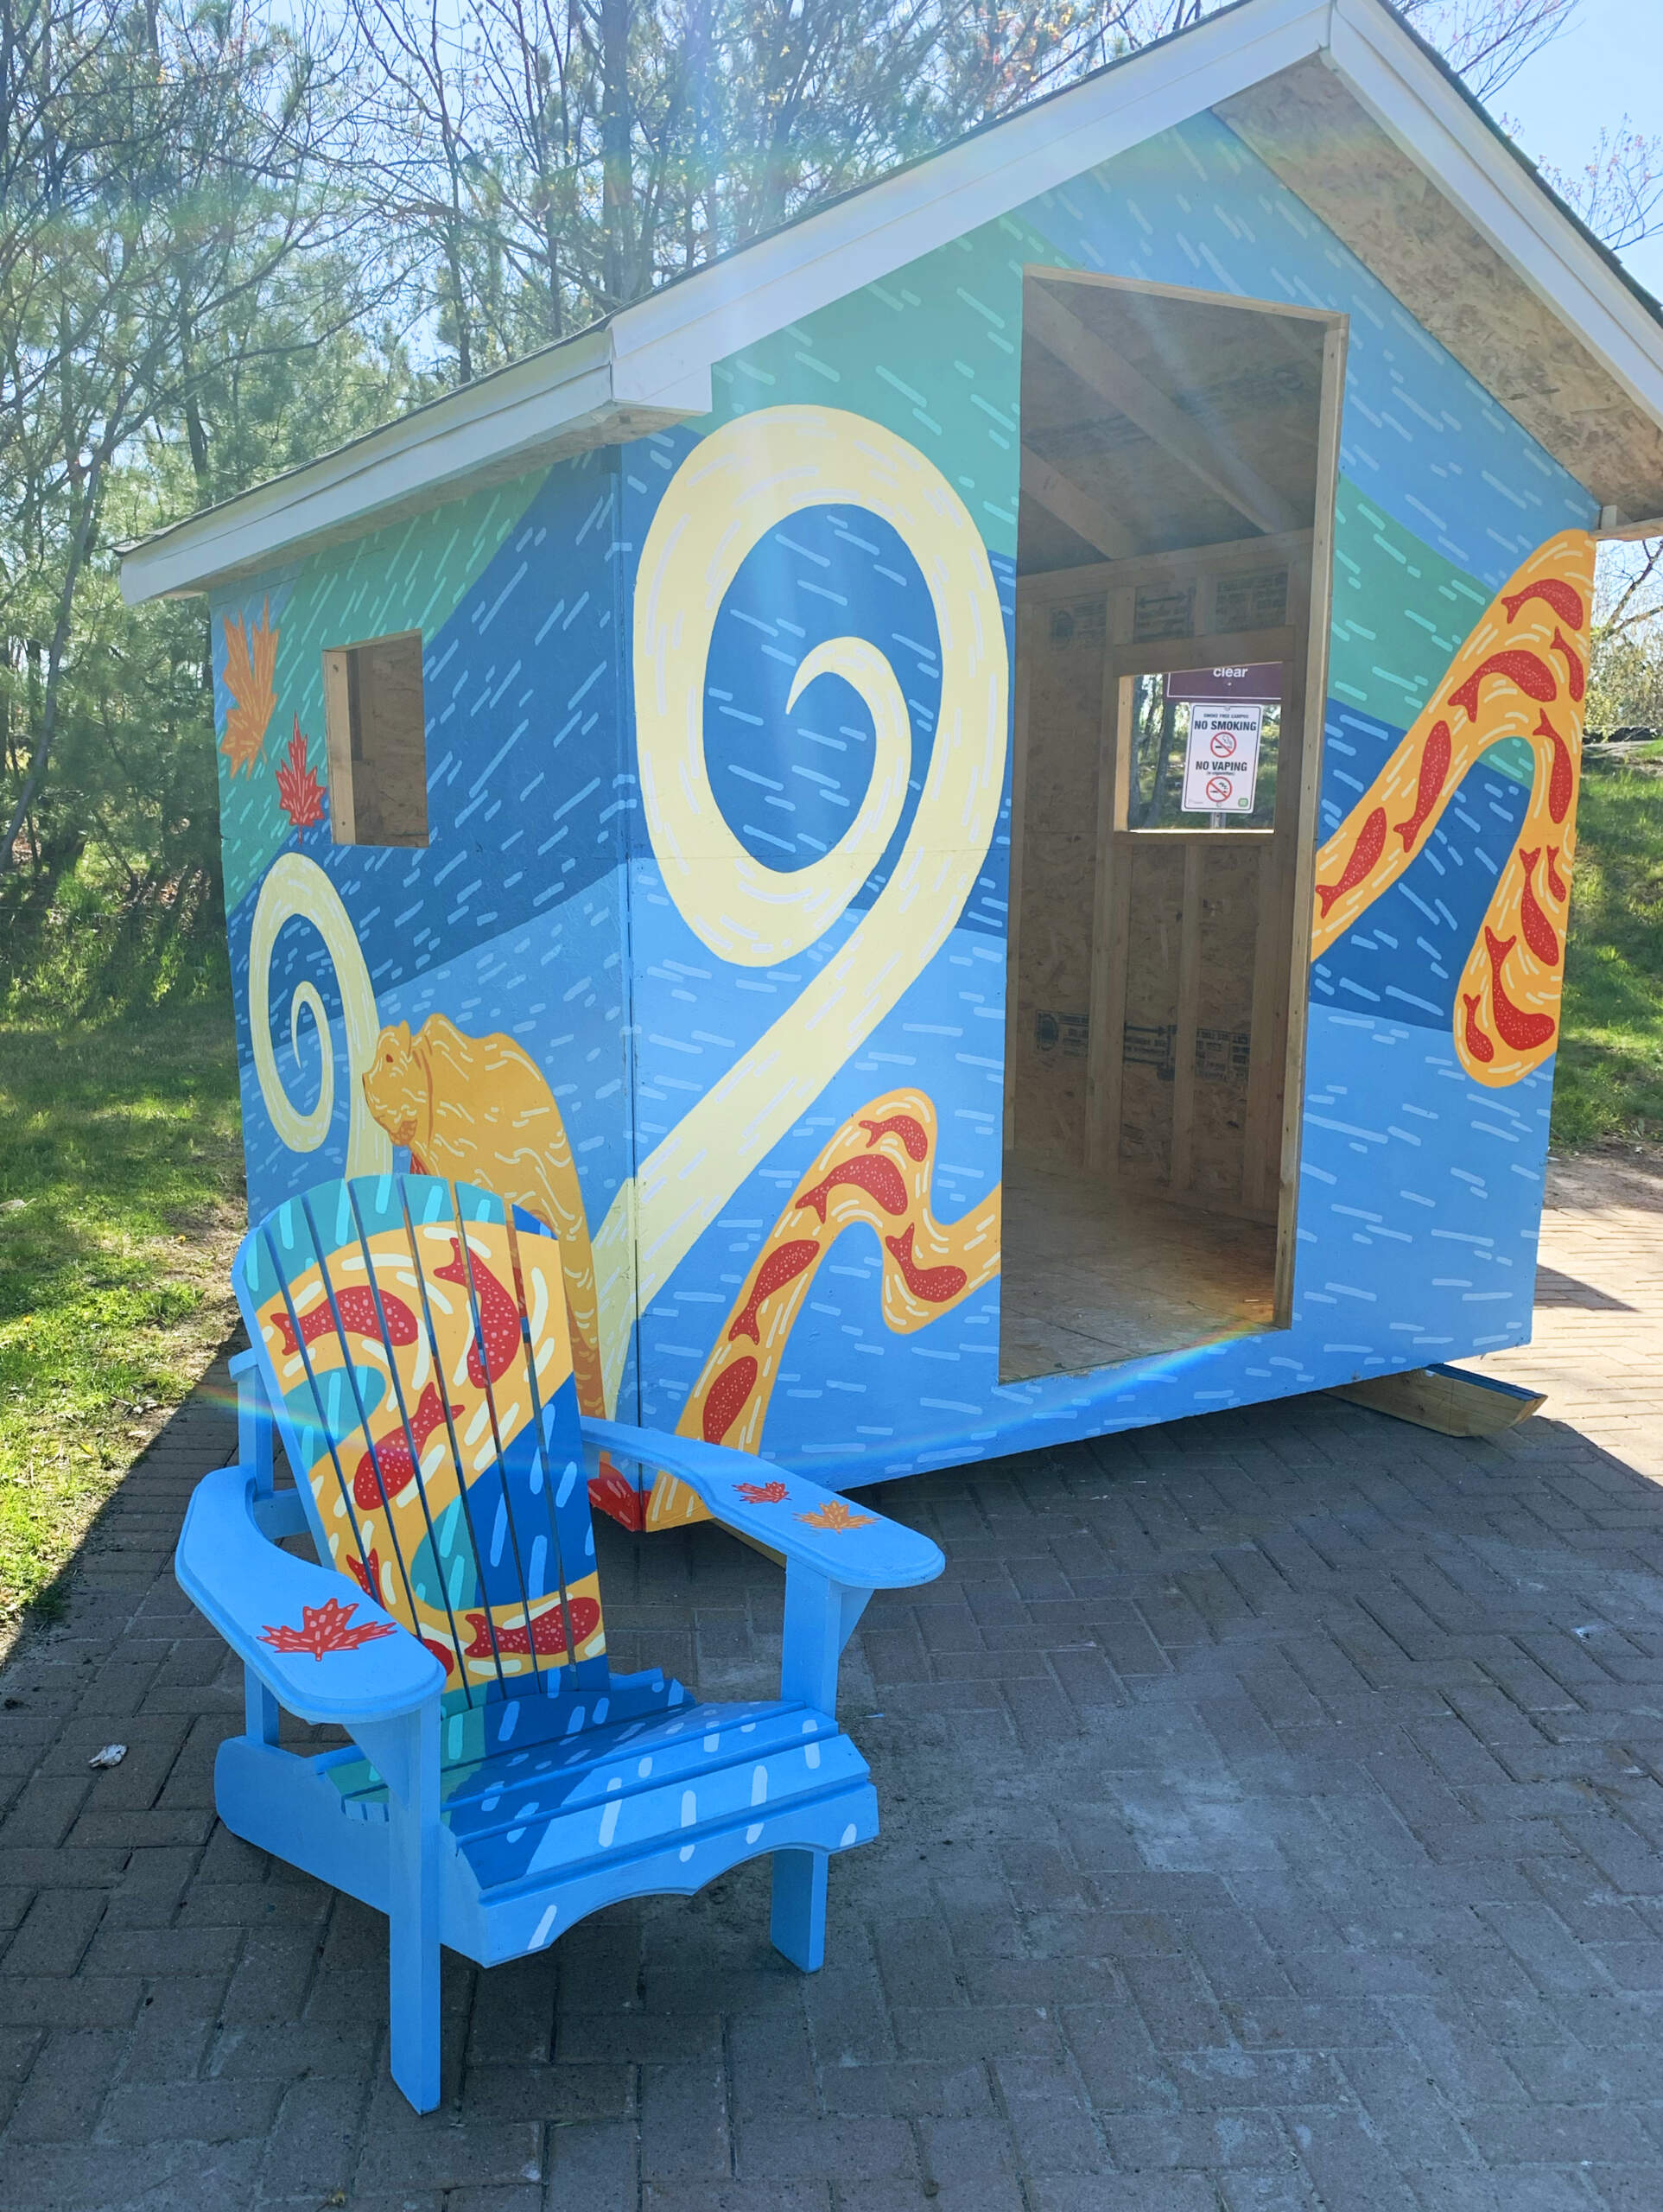 The Cambrian College Foundation is auctioning two ice huts and Muskoka chairs, custom-built by Cambrian's Carpentry students and hand-painted by Design and Visual Arts students. Proceeds will go toward student bursaries. To place a bid, visit www.facebook.com/thecambriancommunity.